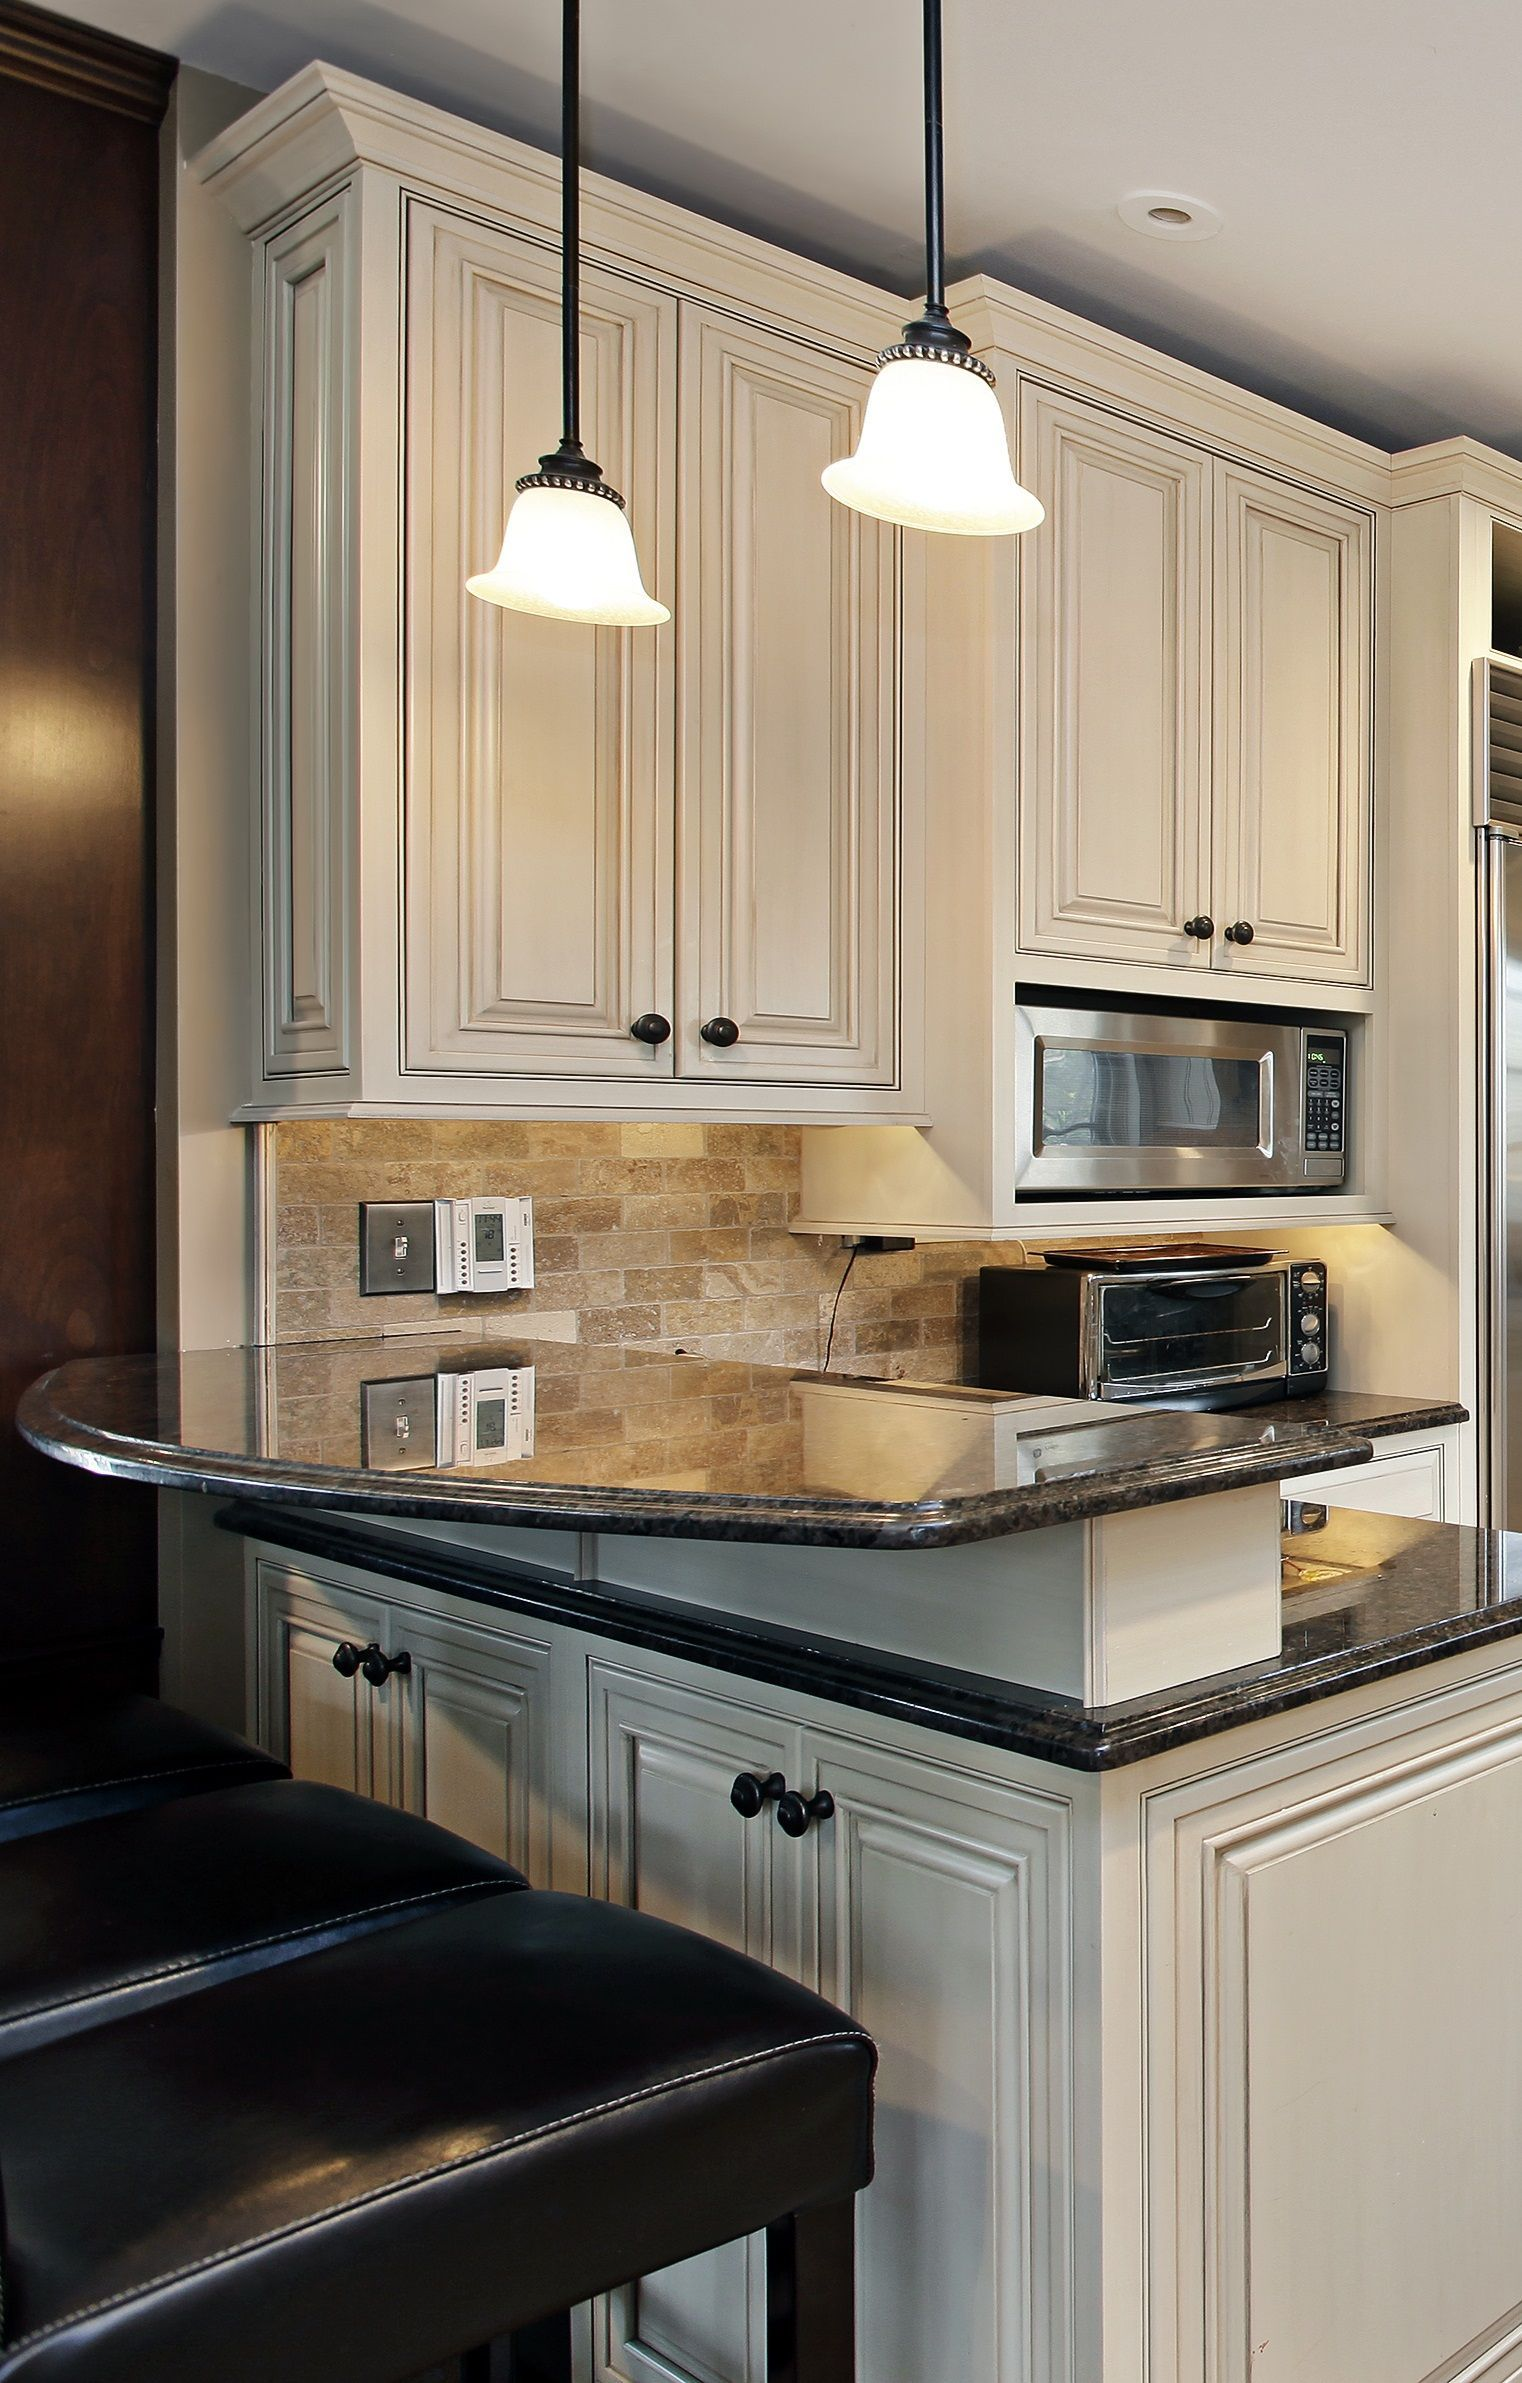 Kitchen Cabinet Trends A Complete Guide For You In 2020 Kitchen Cabinet Trends Kitchen Renovation Cost Kitchen Cabinets